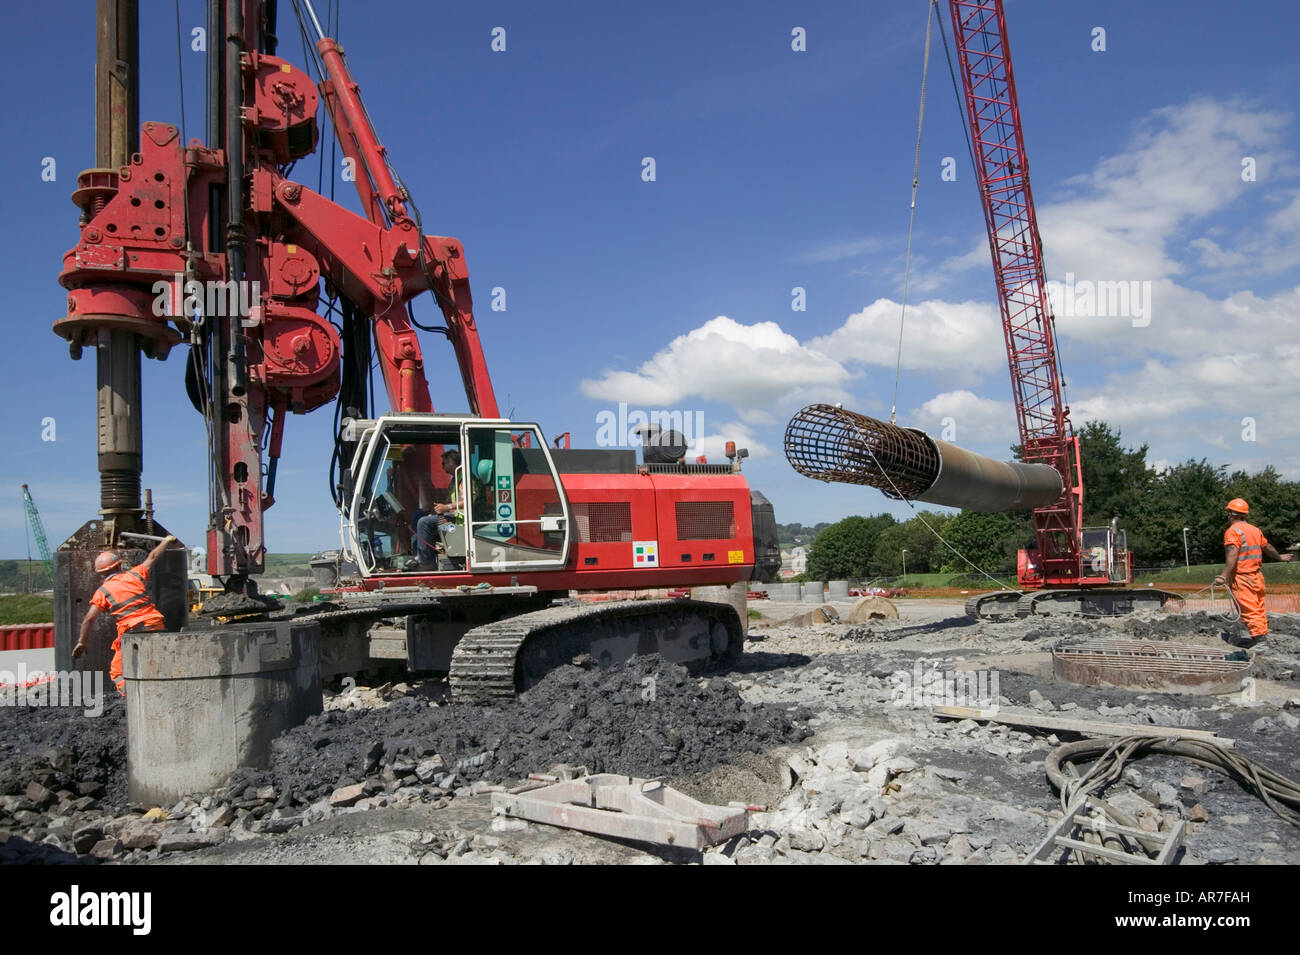 Huge piling rig discharging spoil.  Behind, a crane lifts a reinforced steel cage to insert into pile before concrete - Stock Image